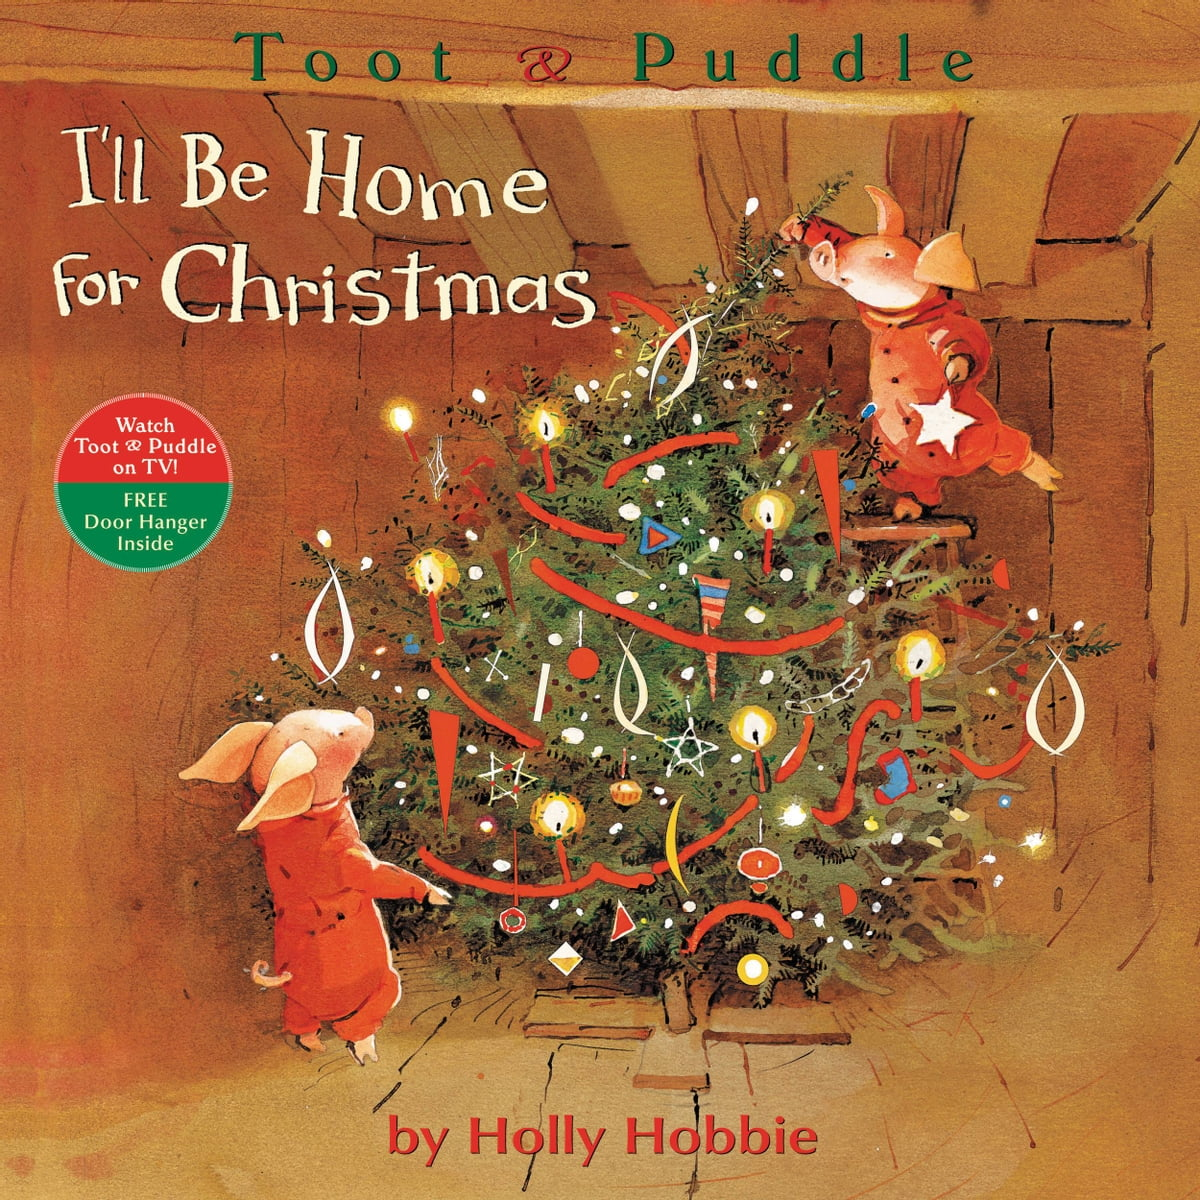 Ill Be Home For Christmas.Toot Puddle I Ll Be Home For Christmas Ebook By Holly Hobbie Rakuten Kobo